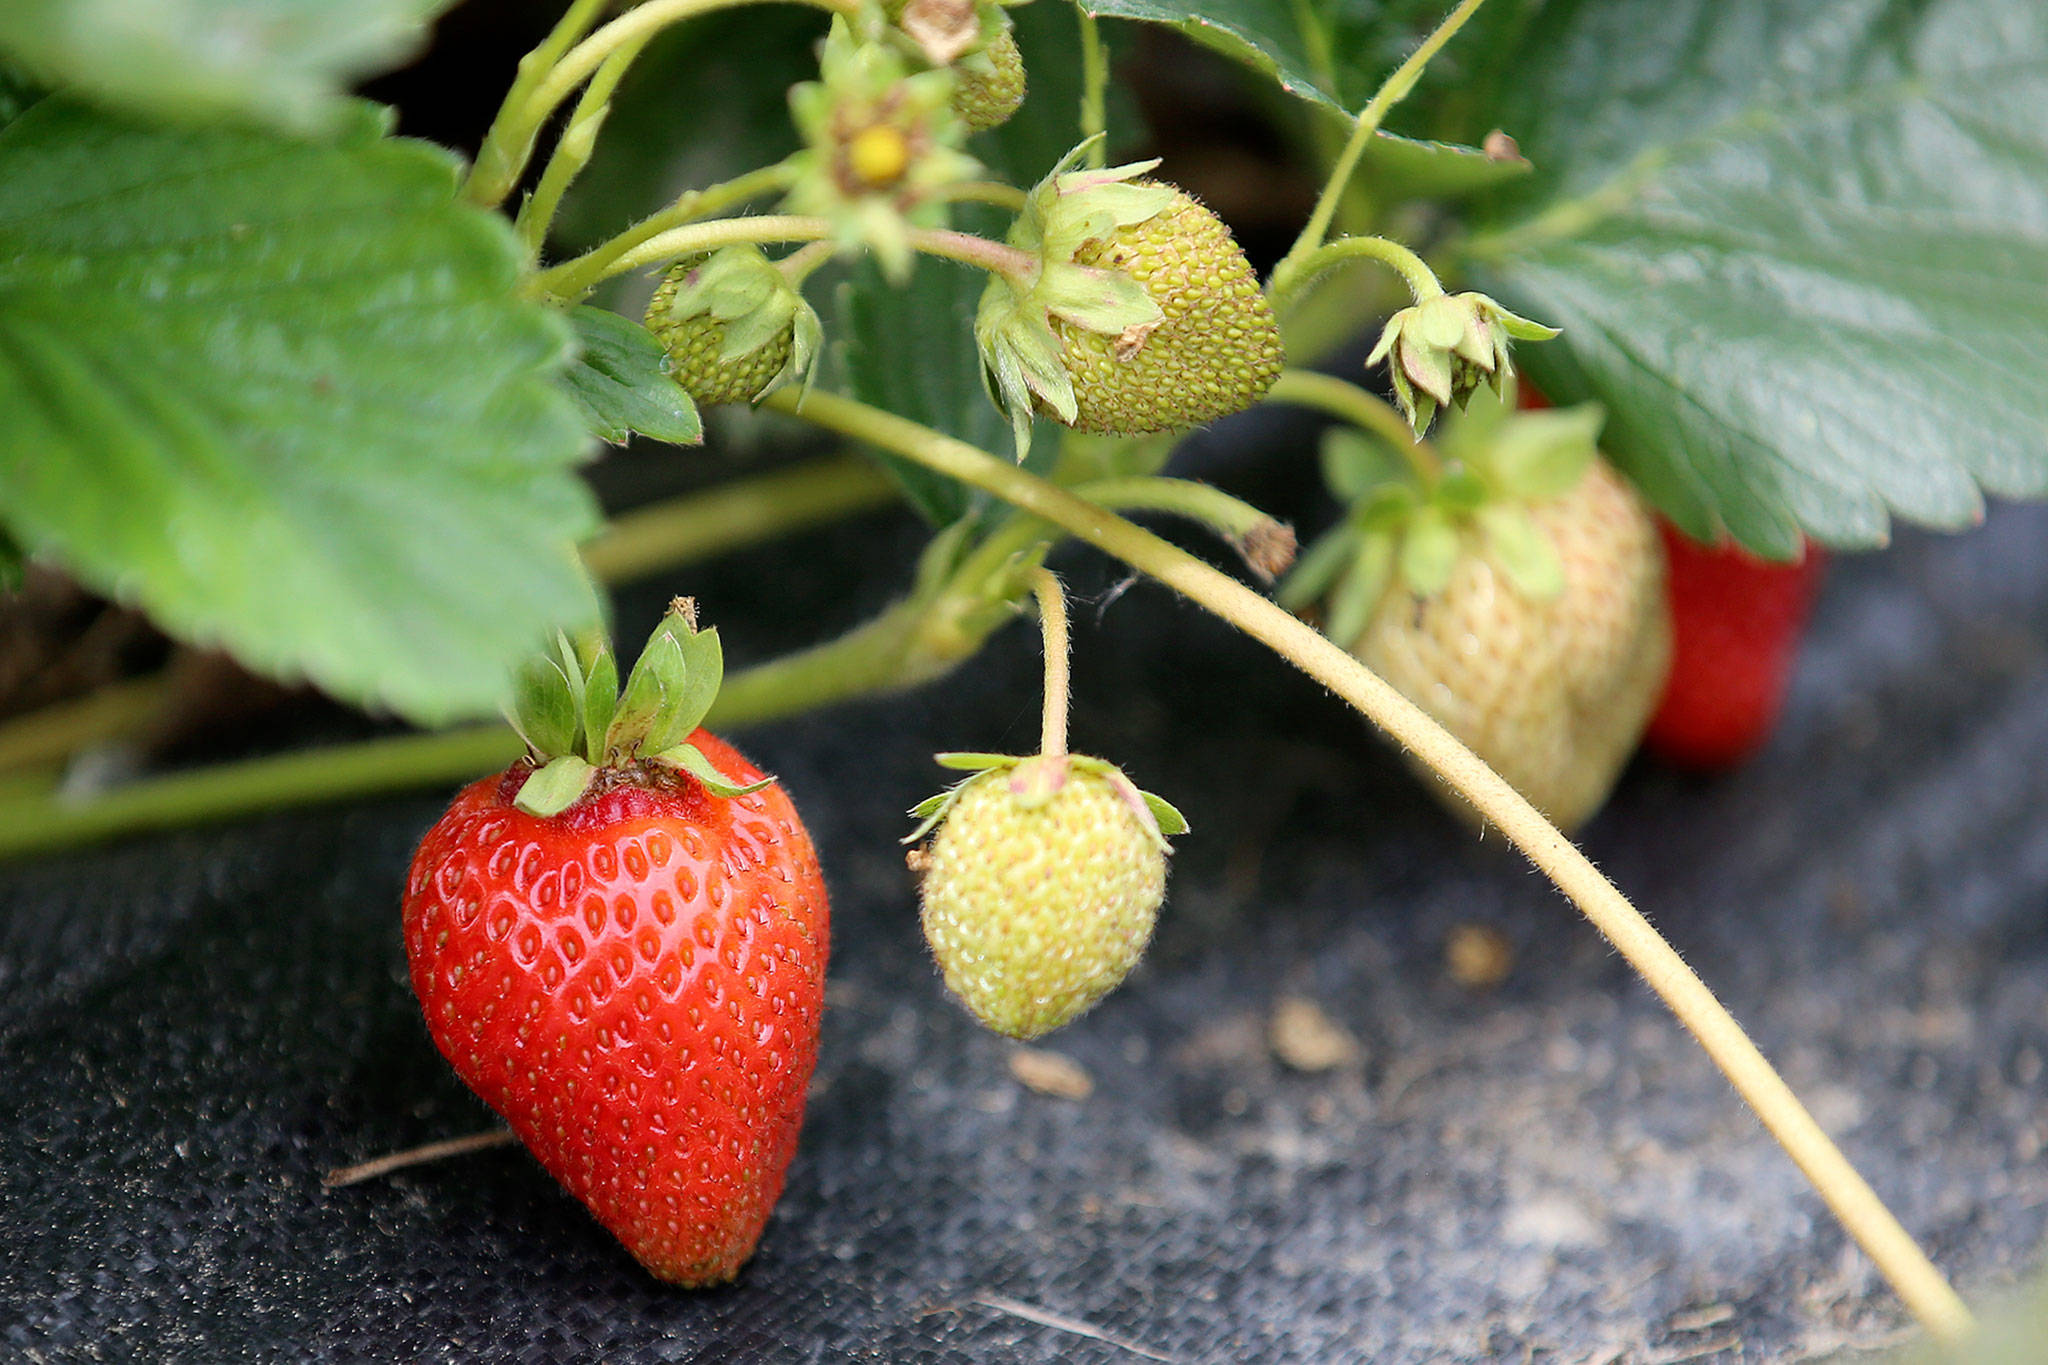 Strawberries grow at Skylight Farms in Snohomish on July 9. (Kevin Clark / The Herald)